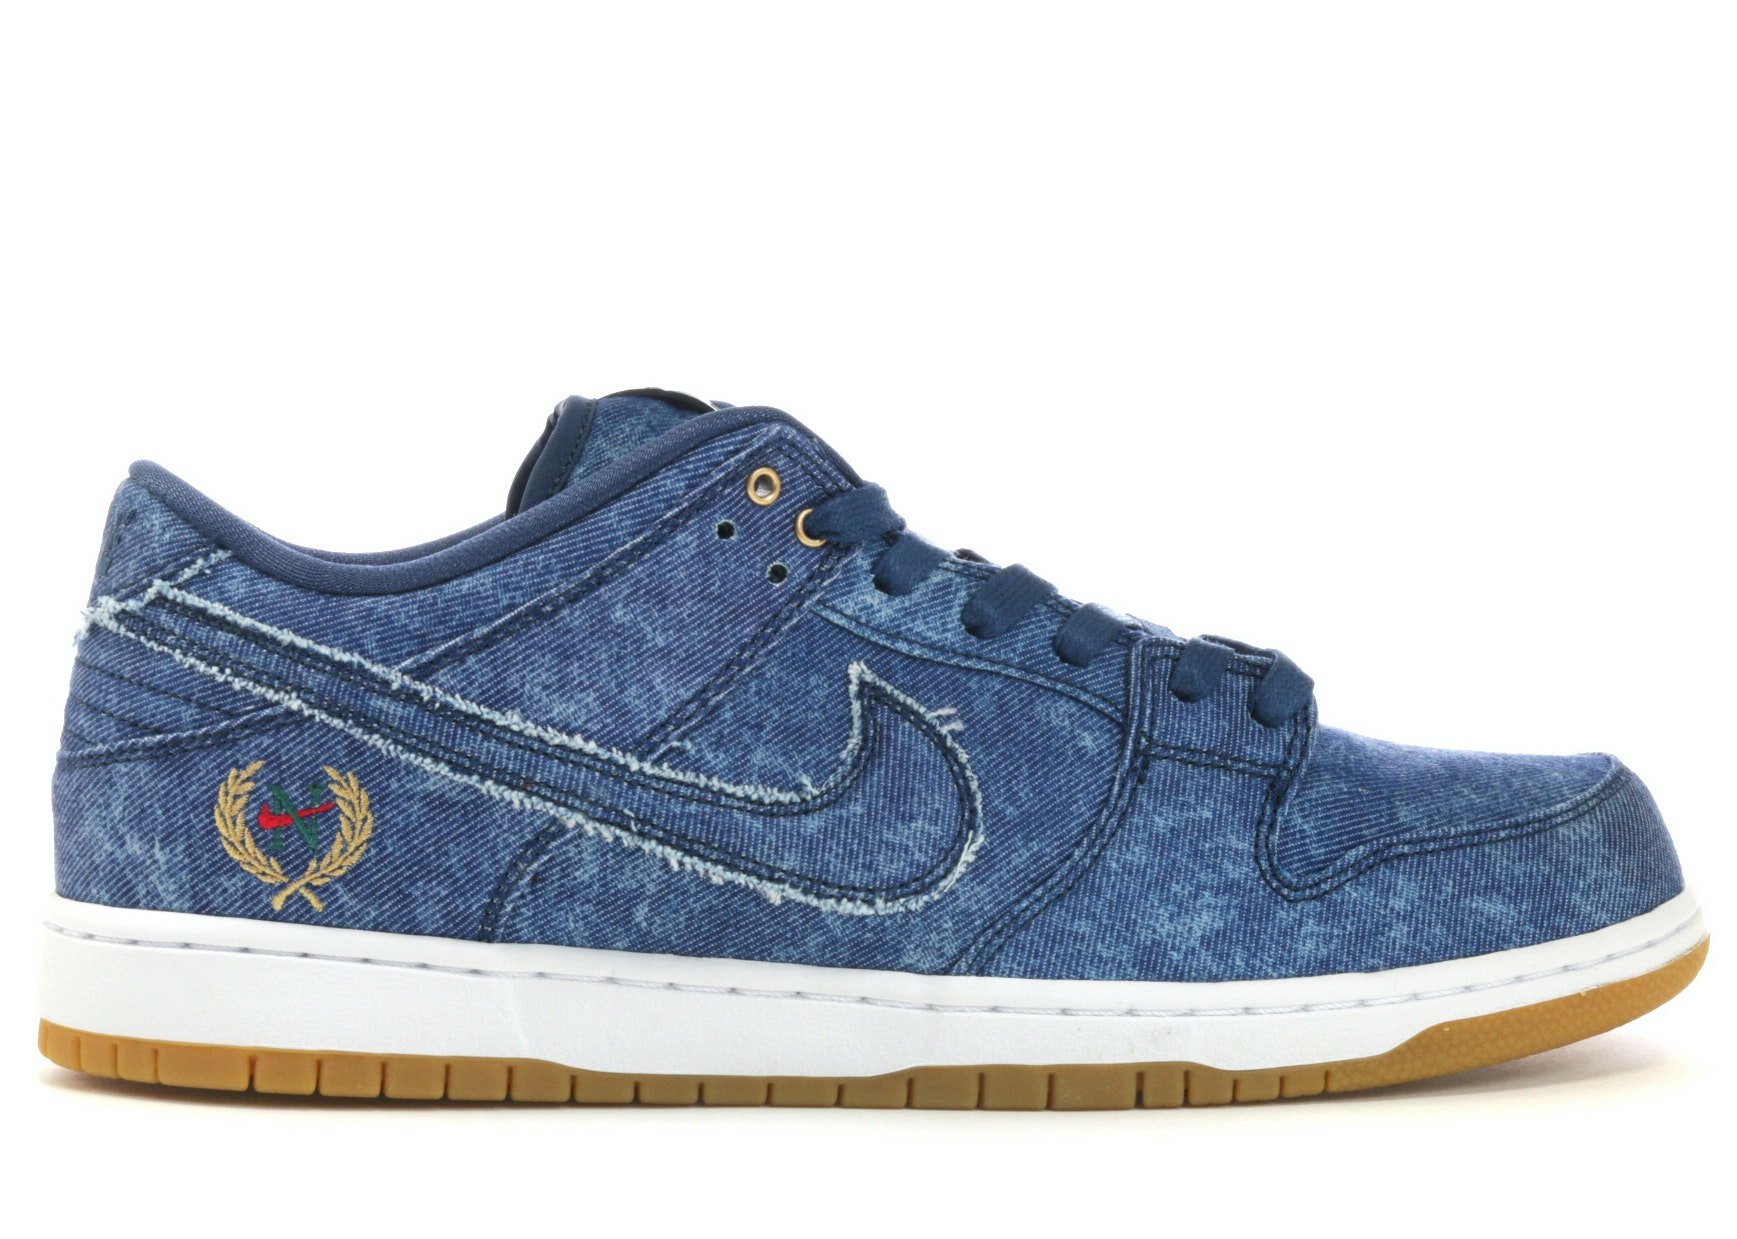 Nike SB Dunk Low Rivals Pack (East)